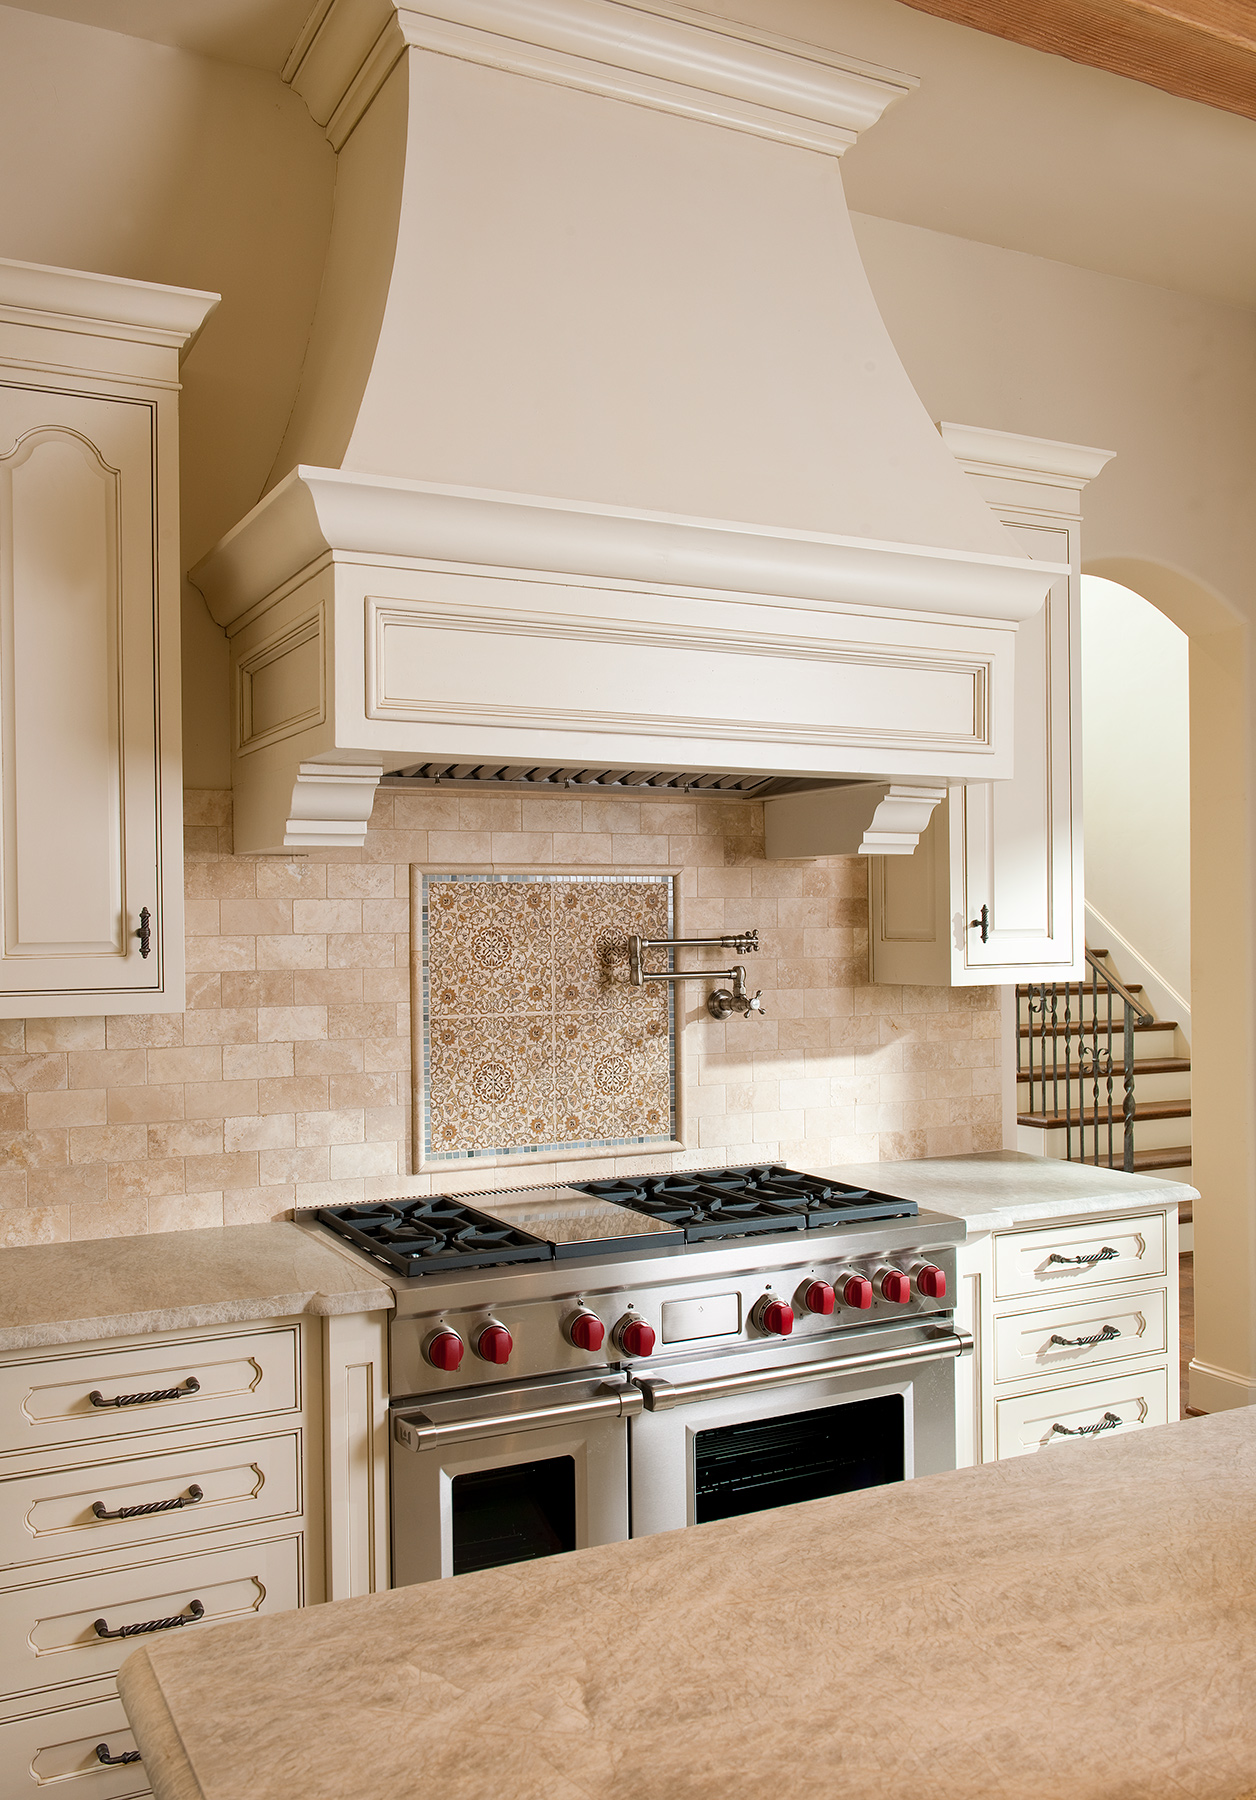 6523-Lupton-kitchen-hood